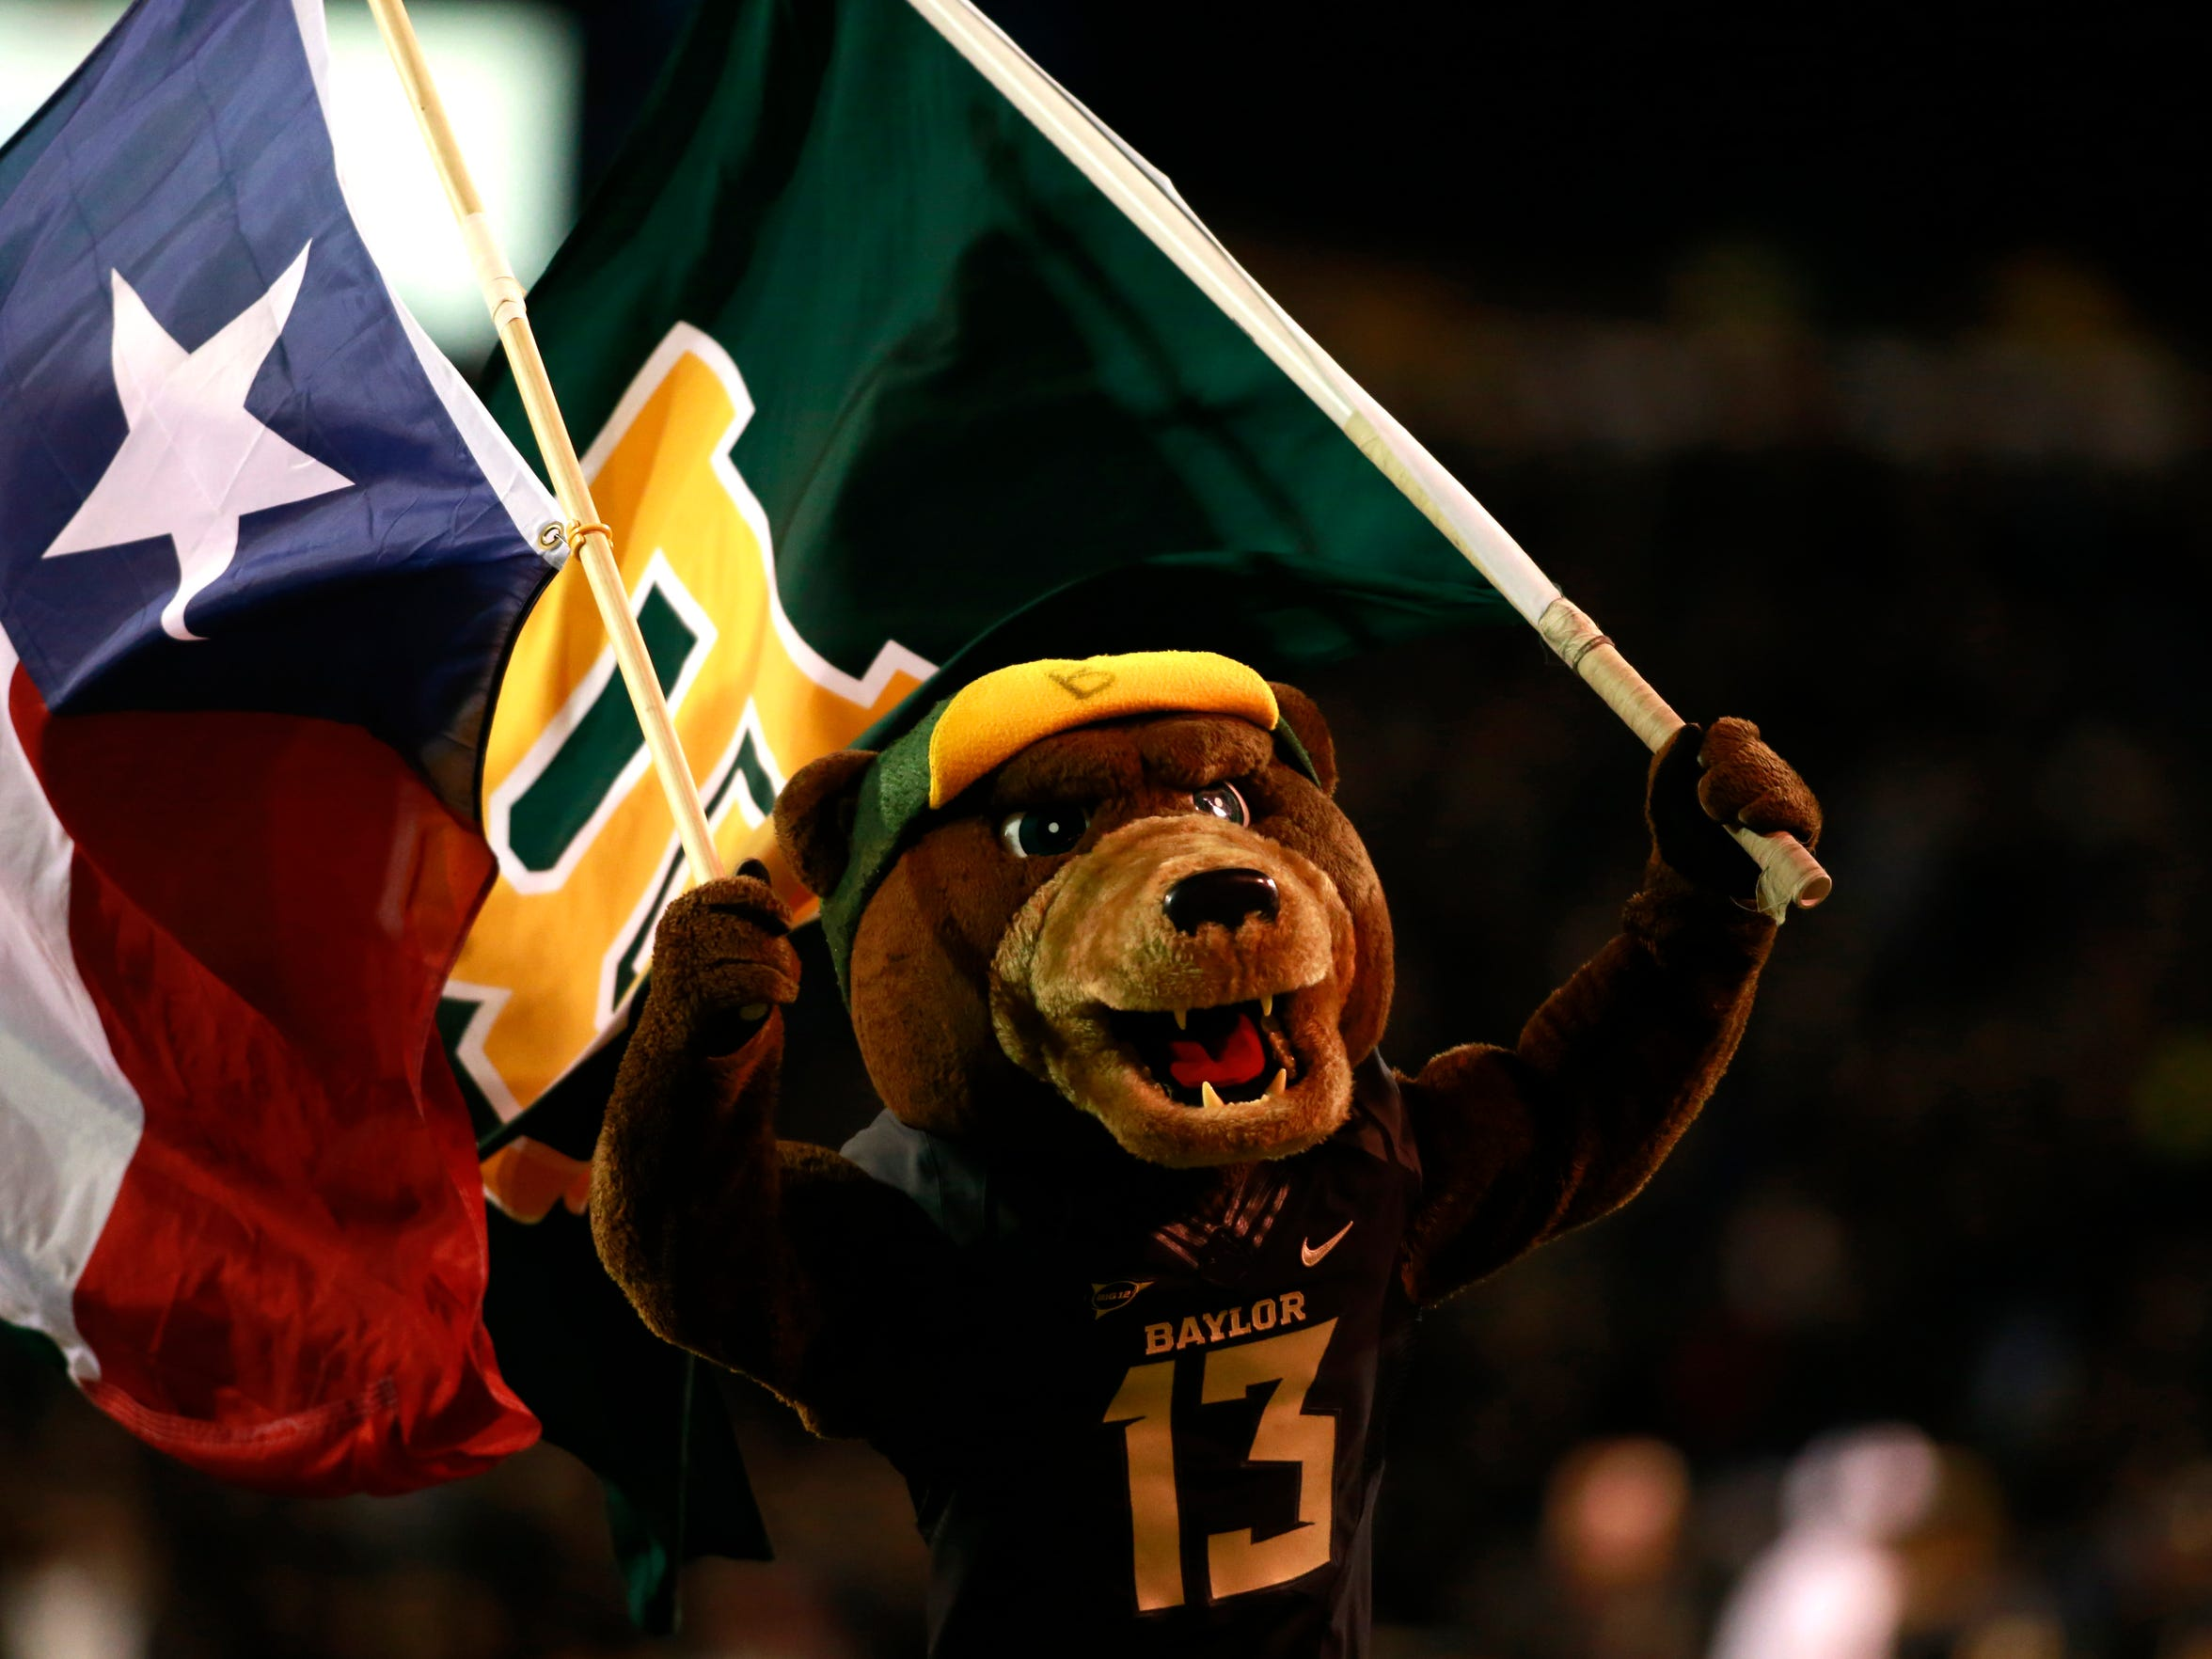 Baylor Bears mascot Bruiser runs on the field with a Texas state flag and a Baylor flag after a touchdown in the team's win against  Oklahoma on Nov. 7.